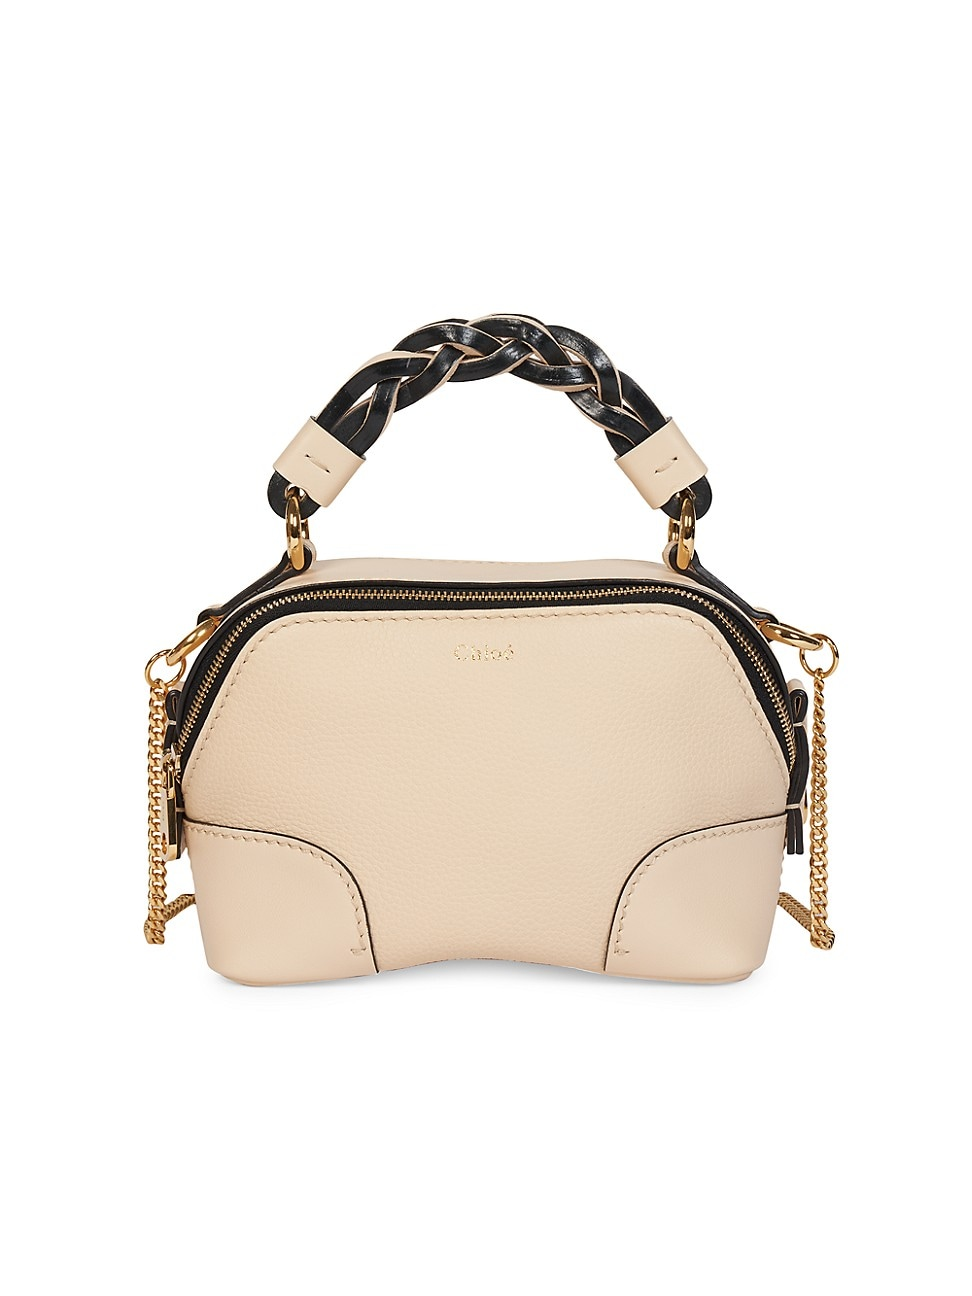 Chloé WOMEN'S MINI DARIA LEATHER SATCHEL